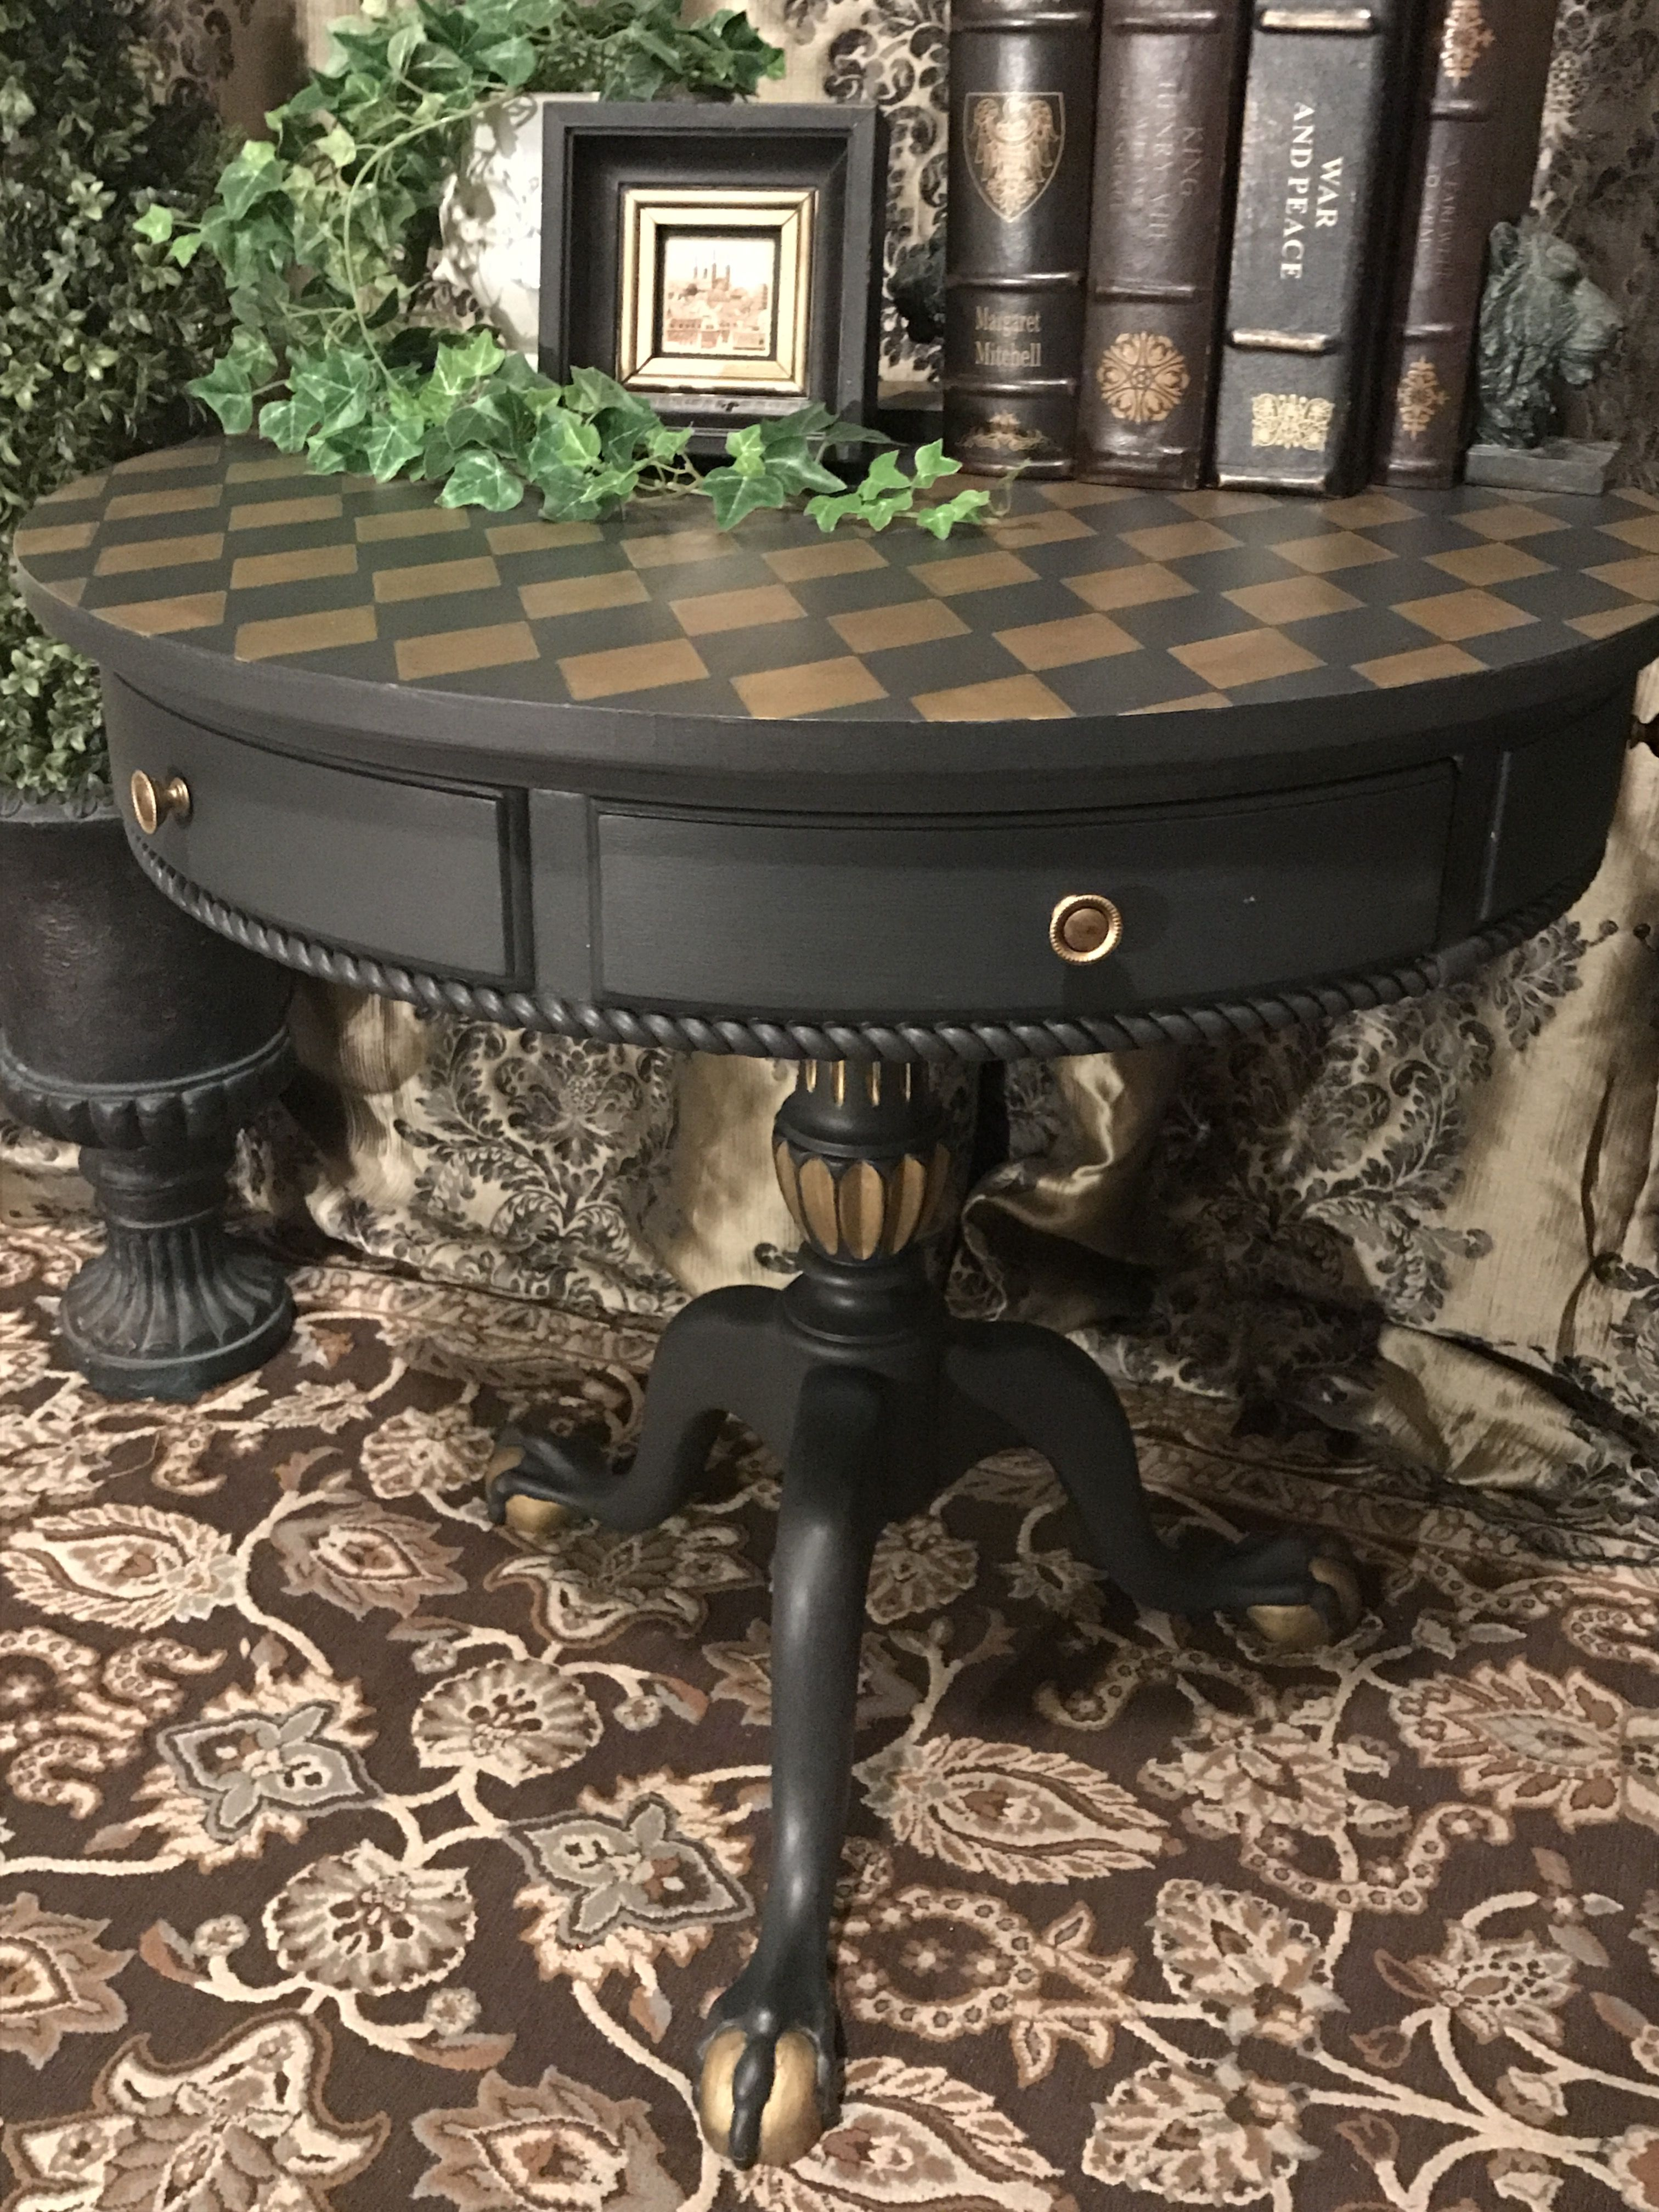 Accent Table Painted In Annie Sloan Chalk Paint Color Graphite With Gold  Harlequin Pattern Stenciled On